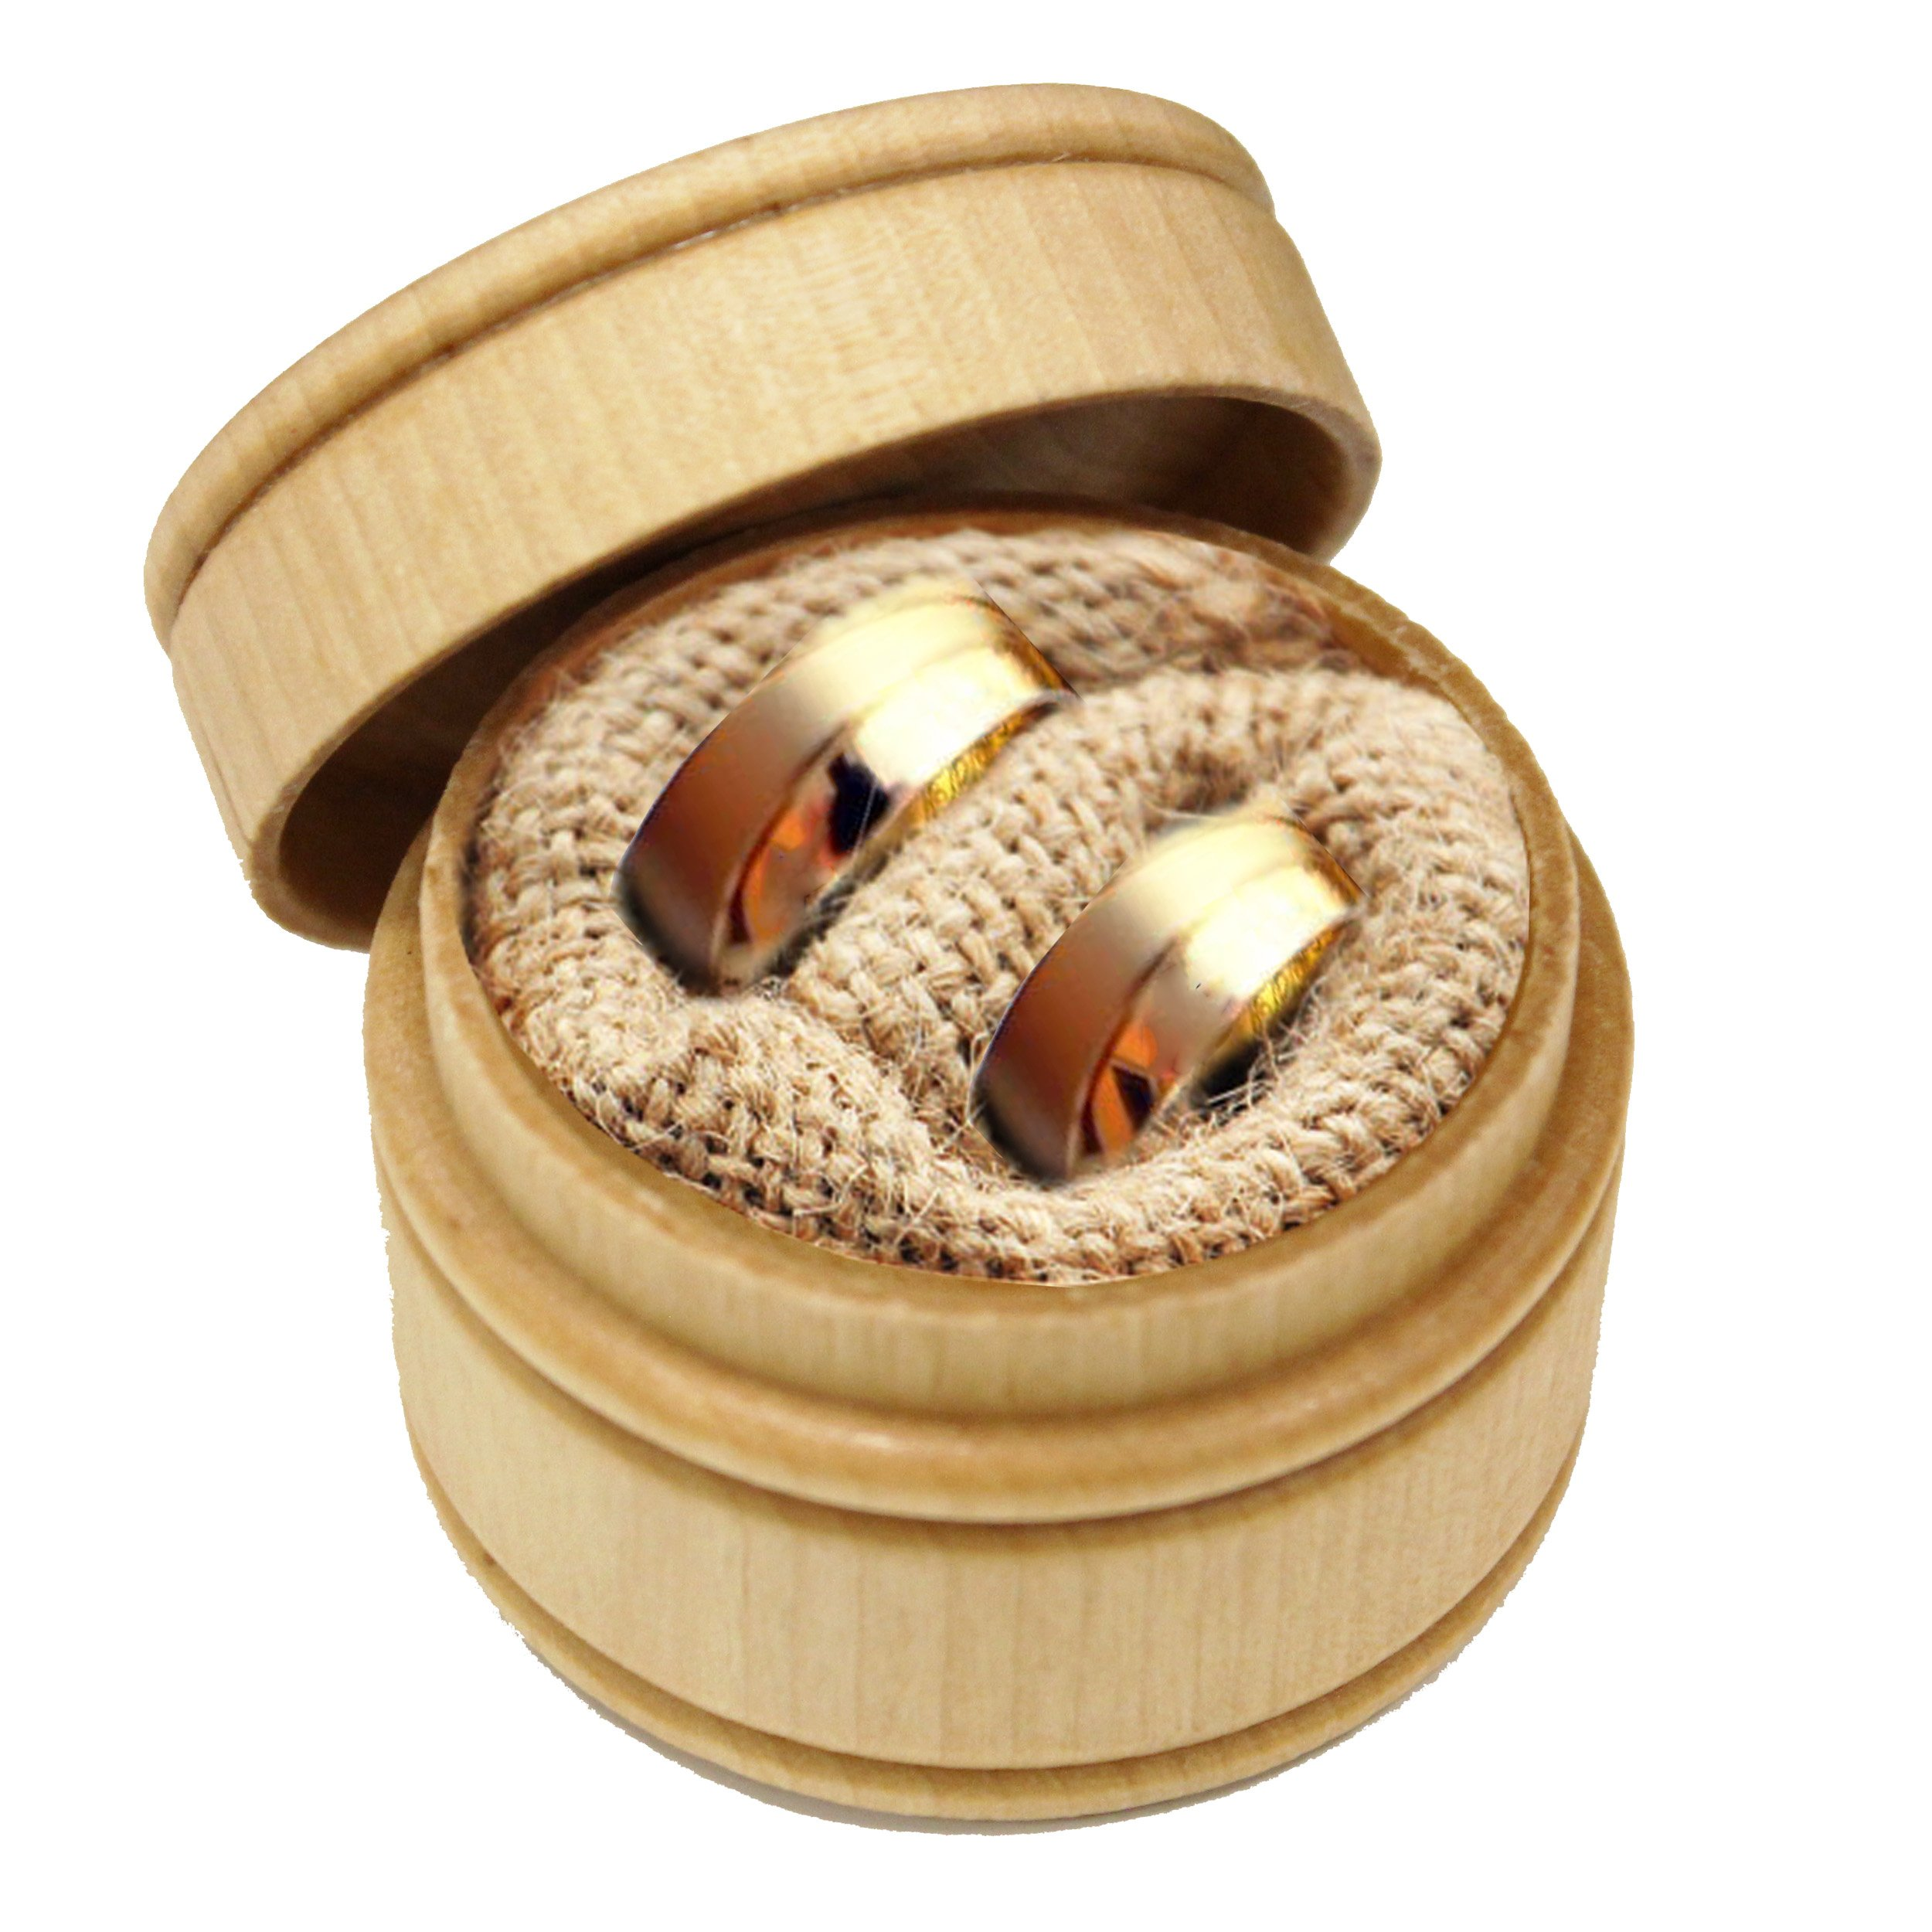 My Personal Memories Wood Ring Box Holder - Ring Bearer Pillow Alternative - Wooden Round Wedding Rings Holder (Mr and Mrs Arrow Style - Brown) by My Personal Memories (Image #2)